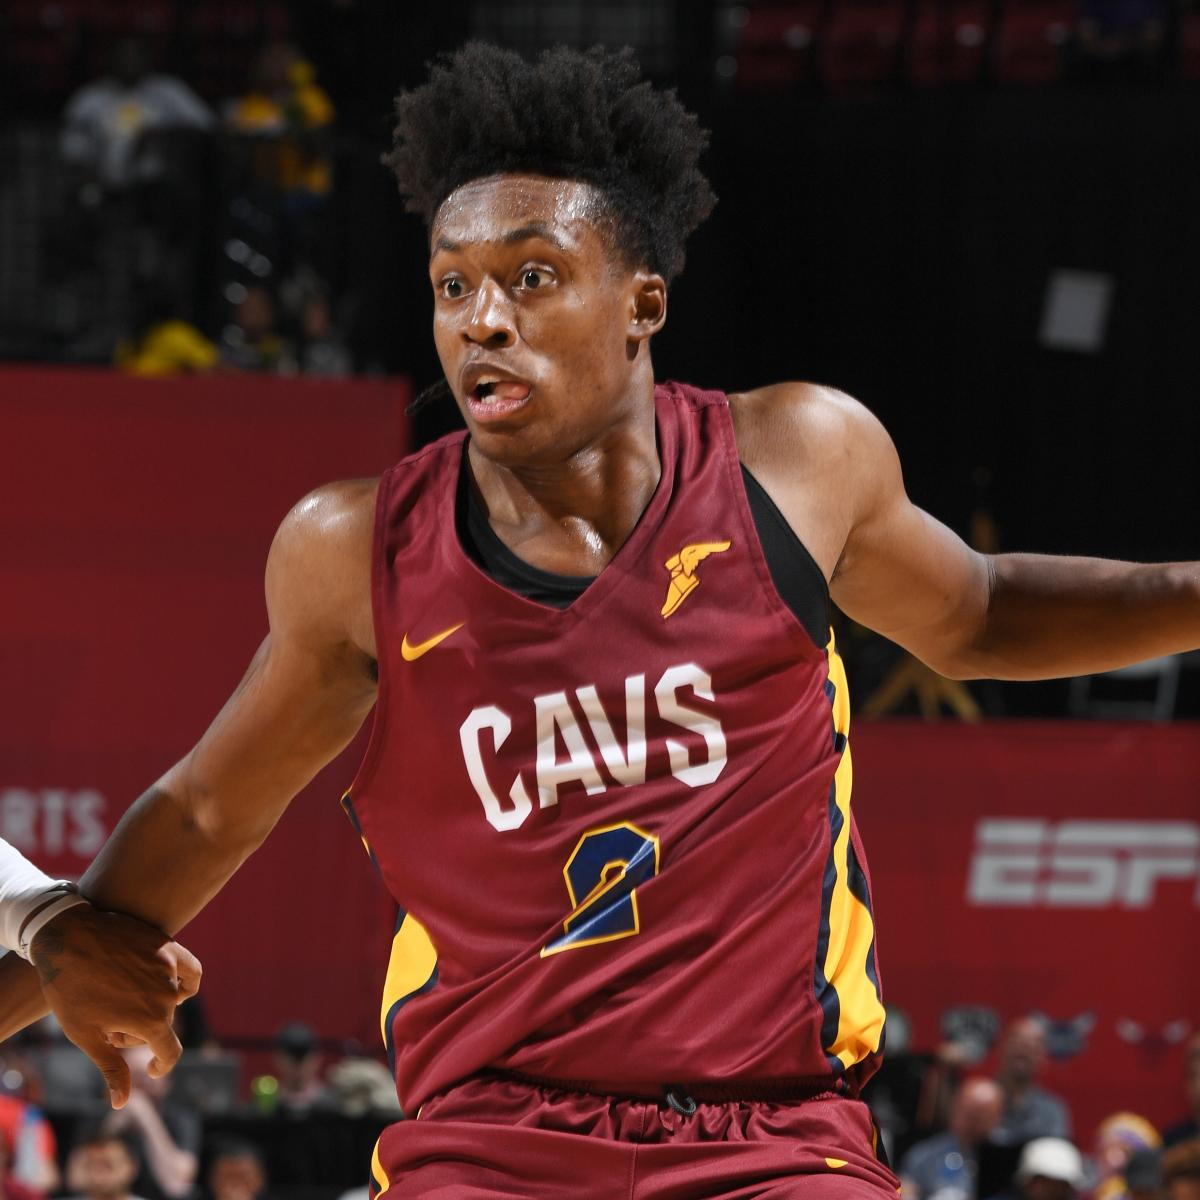 Nba Rookie Award Predictions For 2018 19 Season: Predicting Collin Sexton's Rookie Stats For 2018-19 NBA